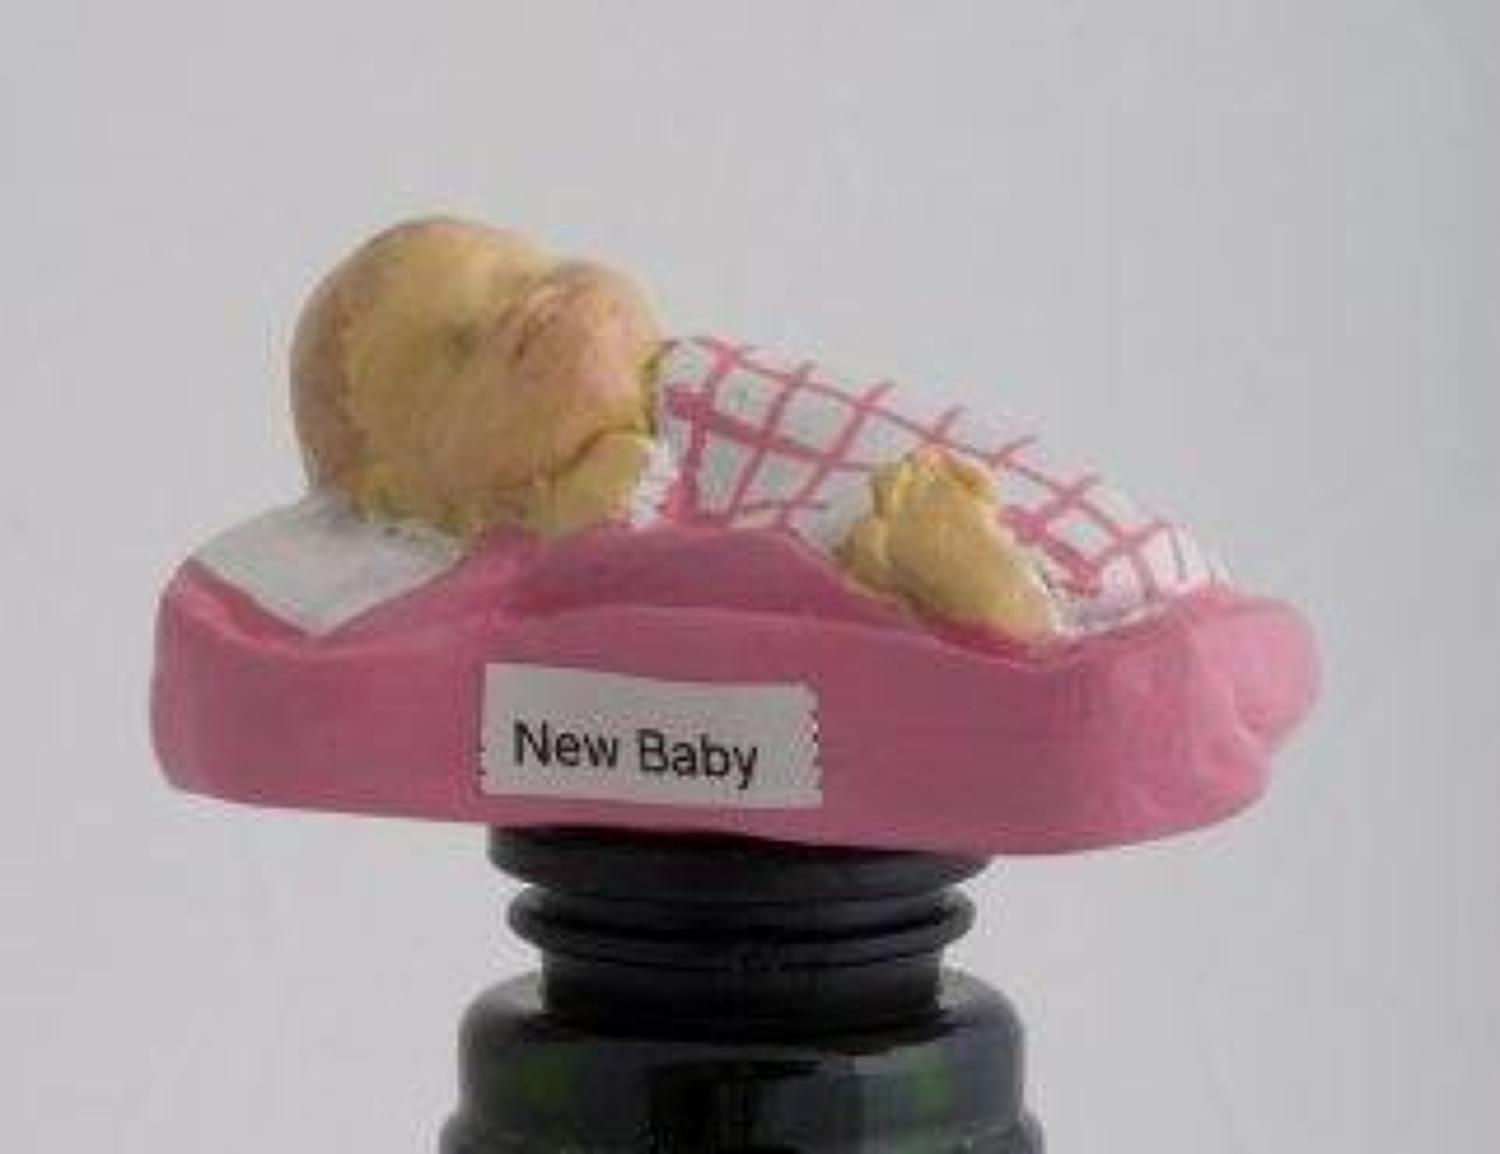 New Baby Girl bottle stopper